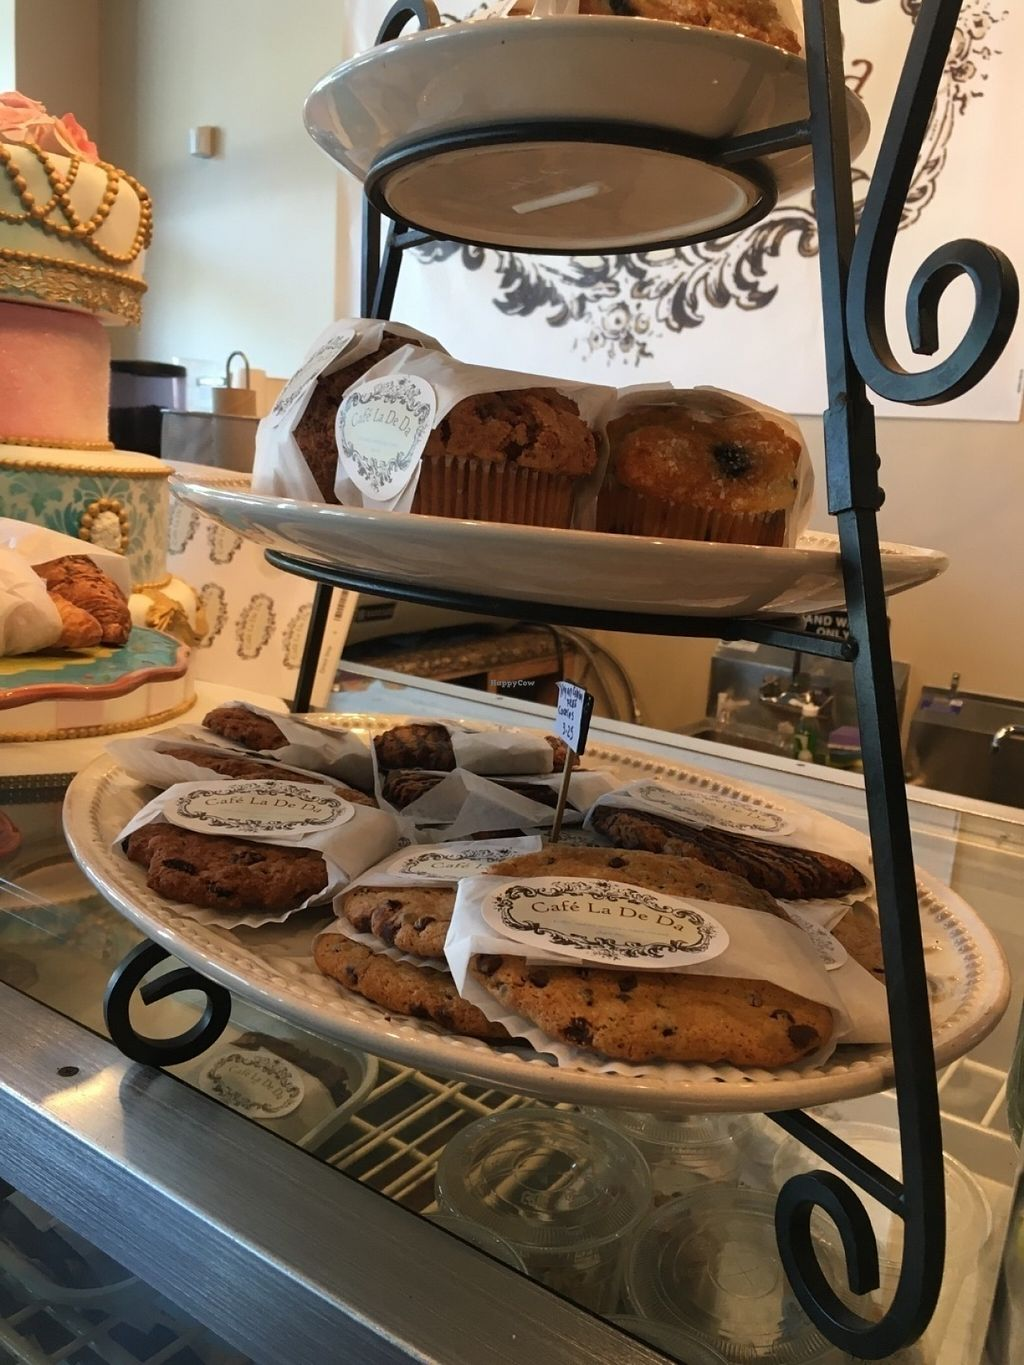 """Photo of Cafe la De Da   by <a href=""""/members/profile/Cafeladeda1"""">Cafeladeda1</a> <br/>Vegan gluten free cookies, biscotti, brownies and crumb cake  <br/> July 23, 2016  - <a href='/contact/abuse/image/77003/161790'>Report</a>"""